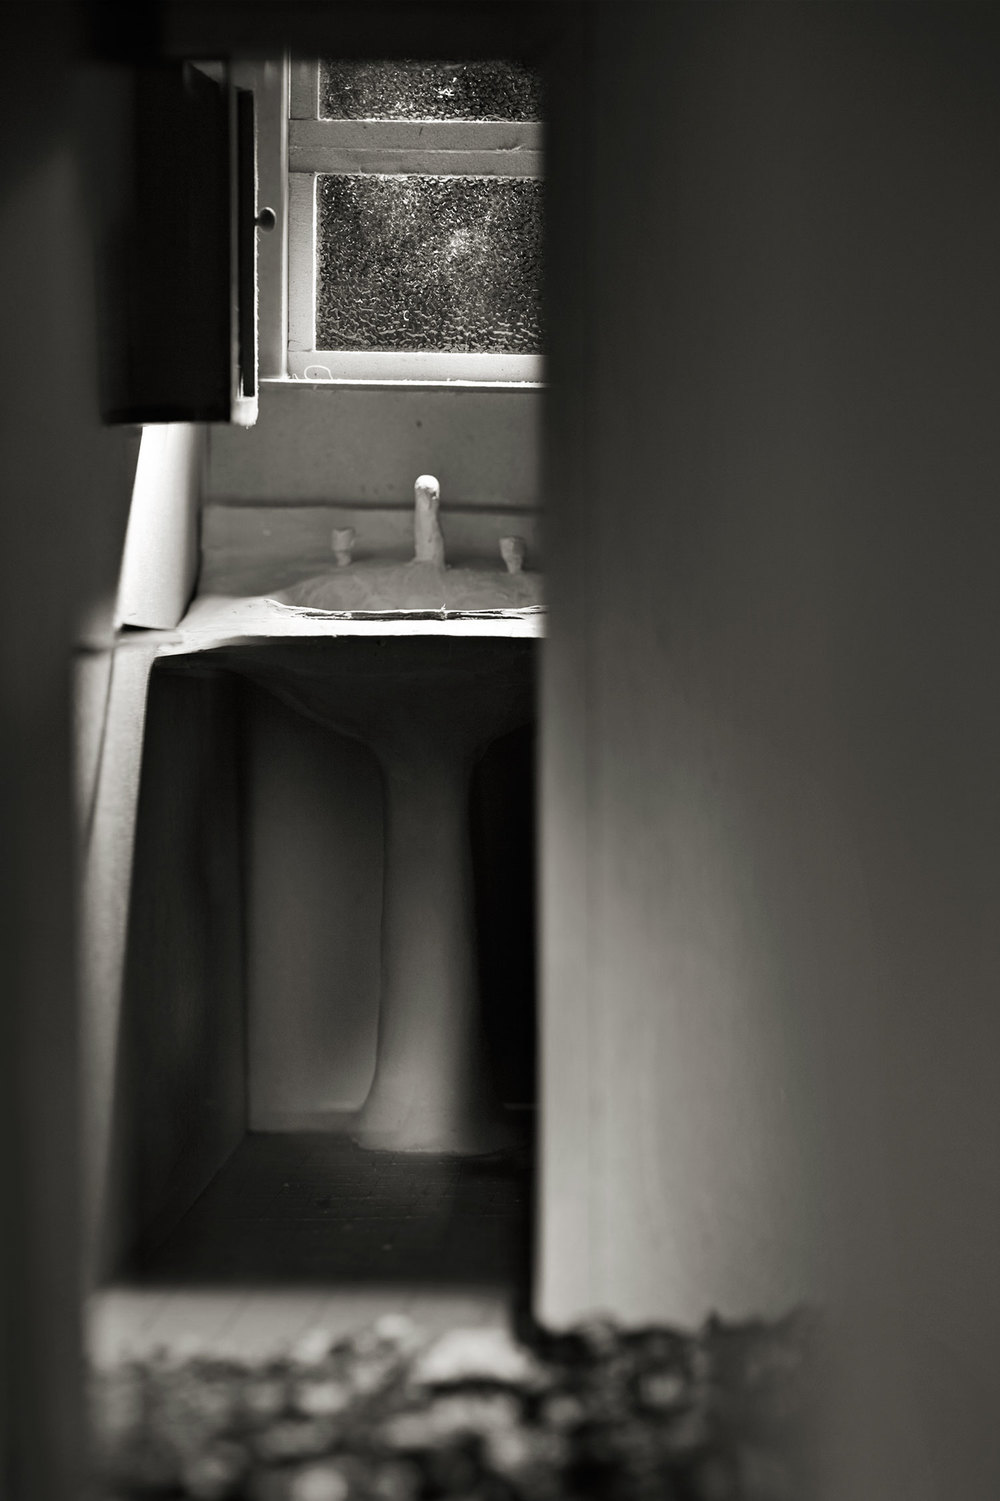 LikeAThiefInTheNight_12.jpg